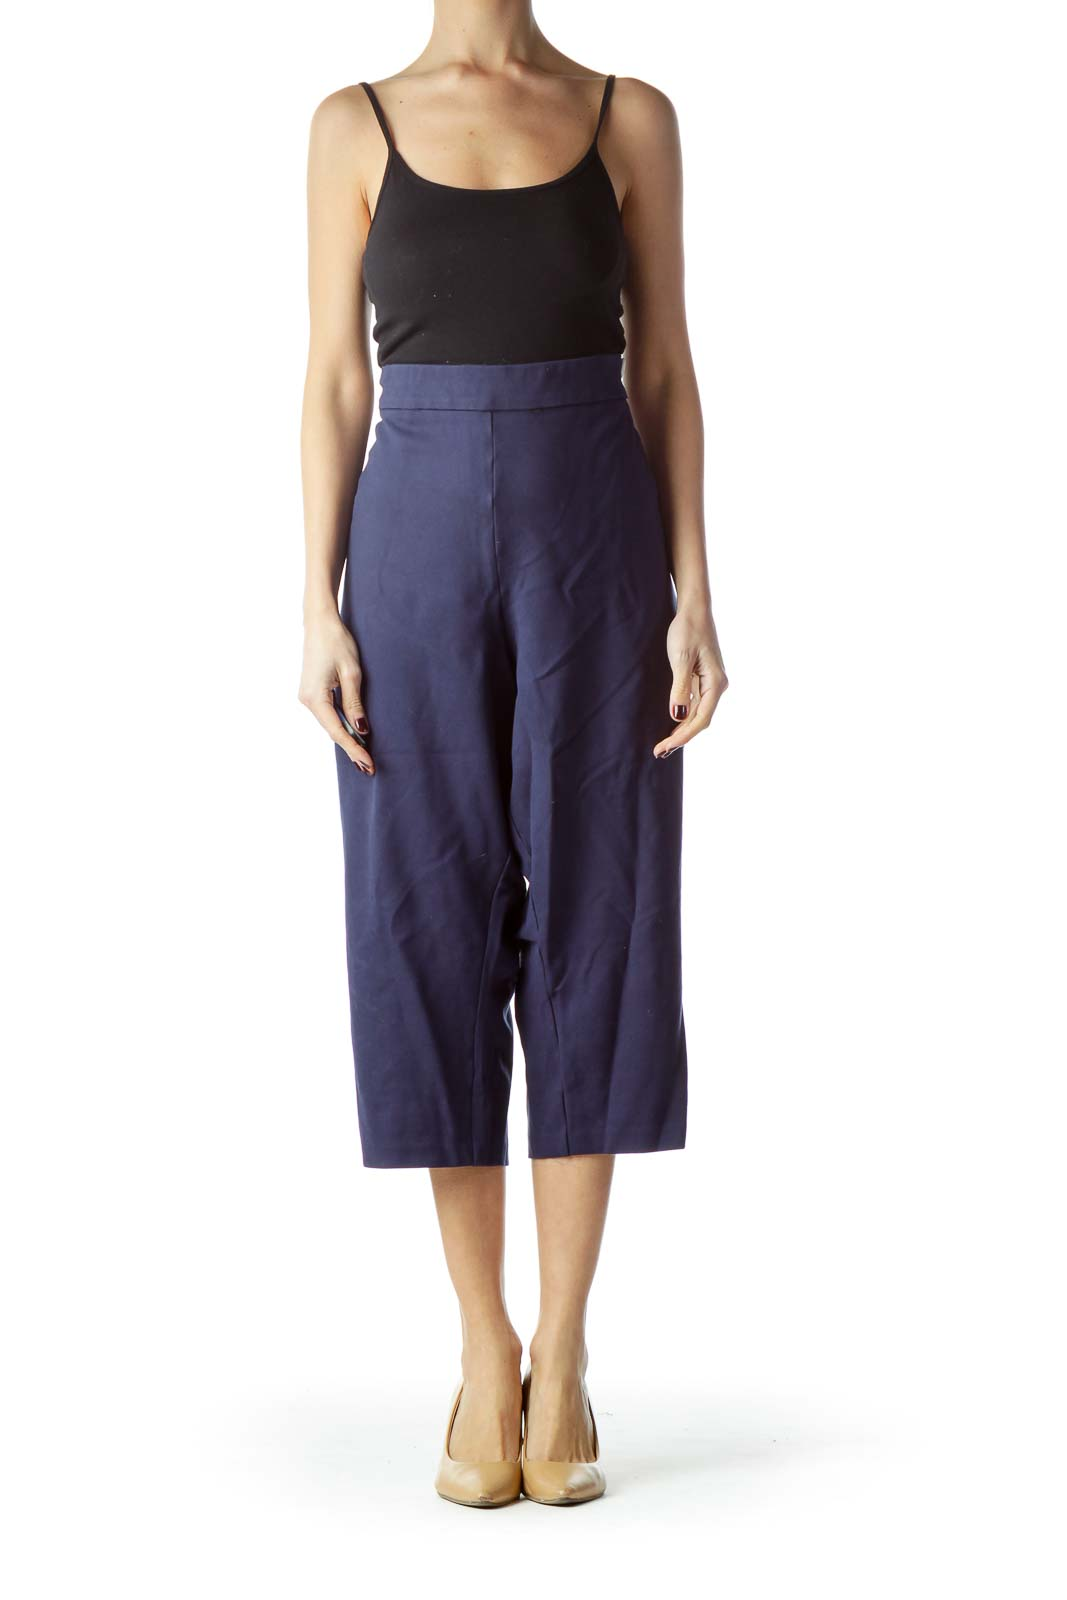 Shop Navy Blue Cropped Pants with White Buttons clothing and